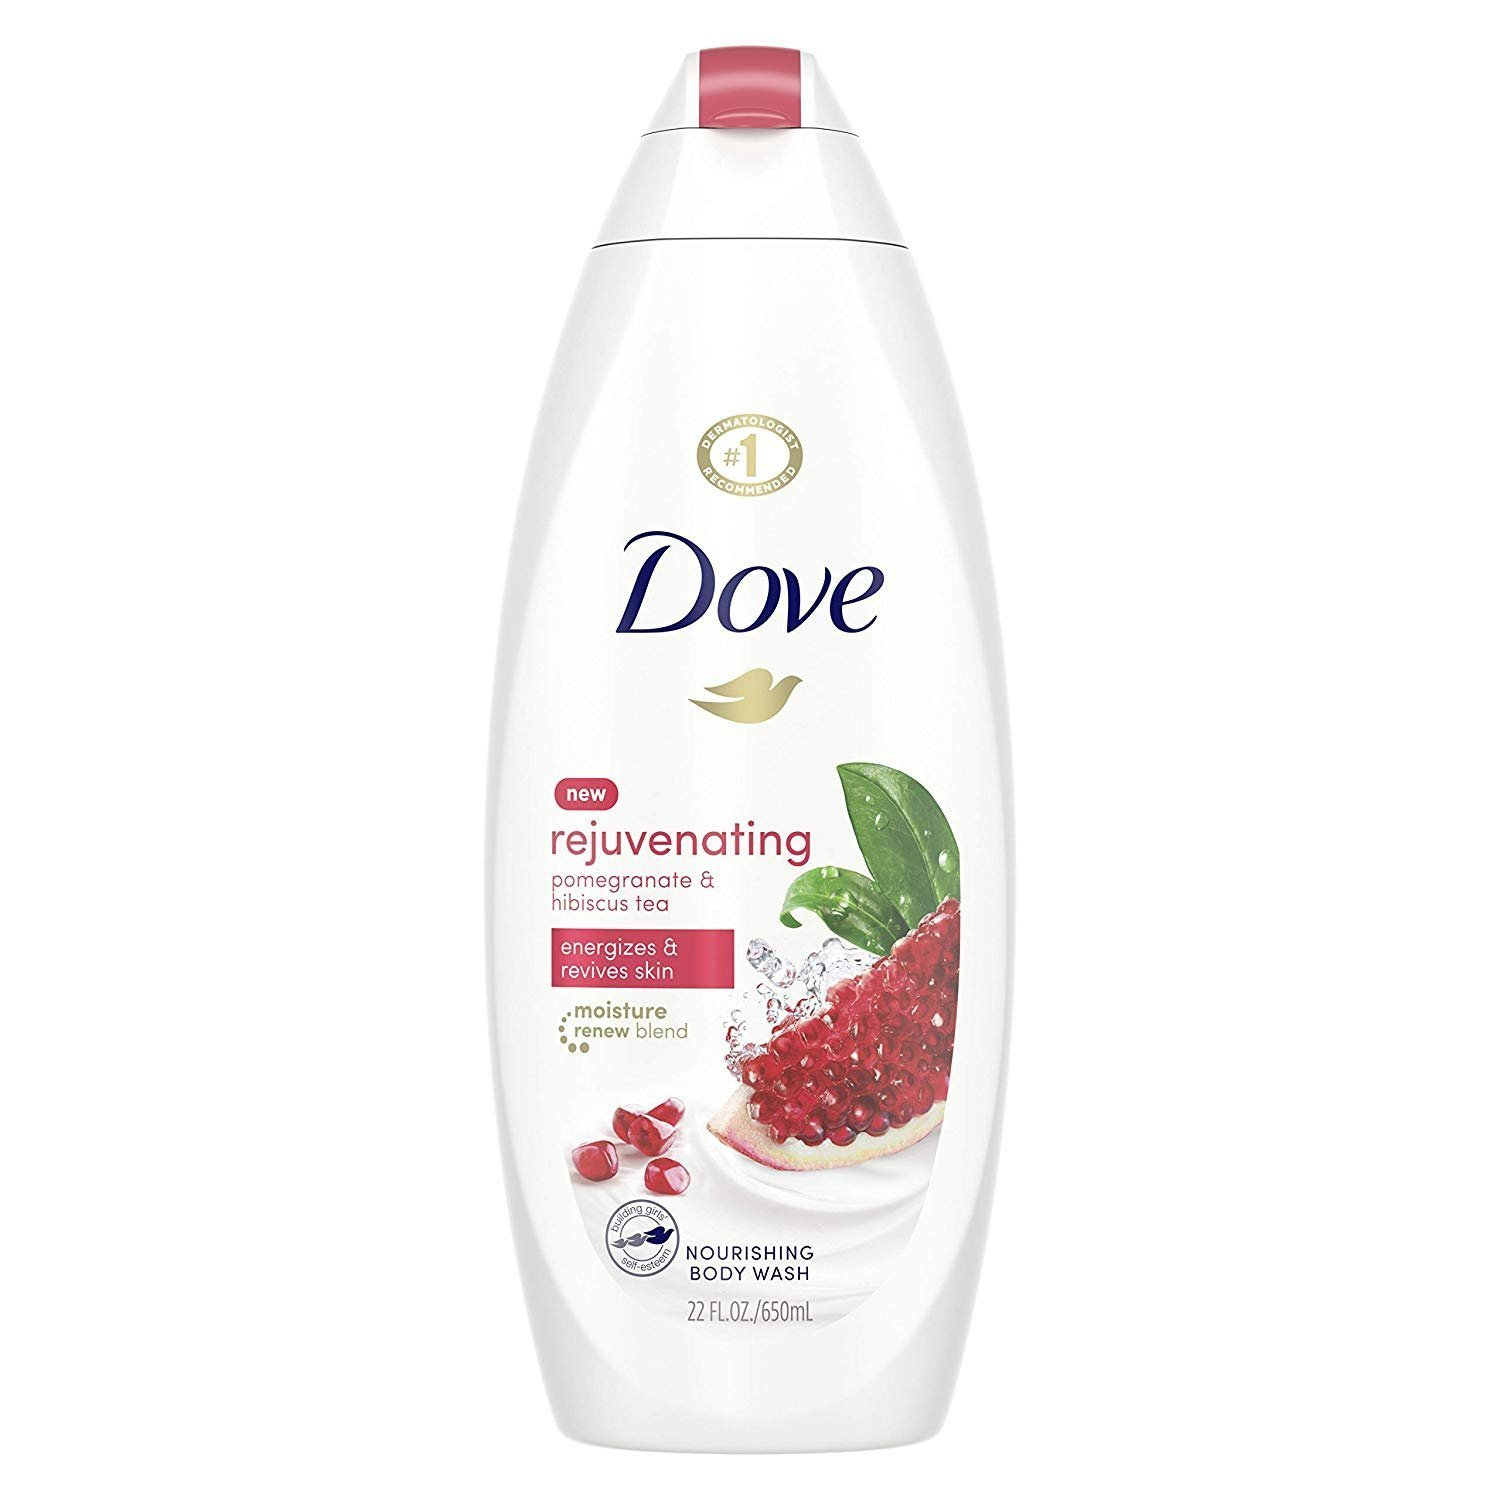 Dove Go Fresh Pomegranate